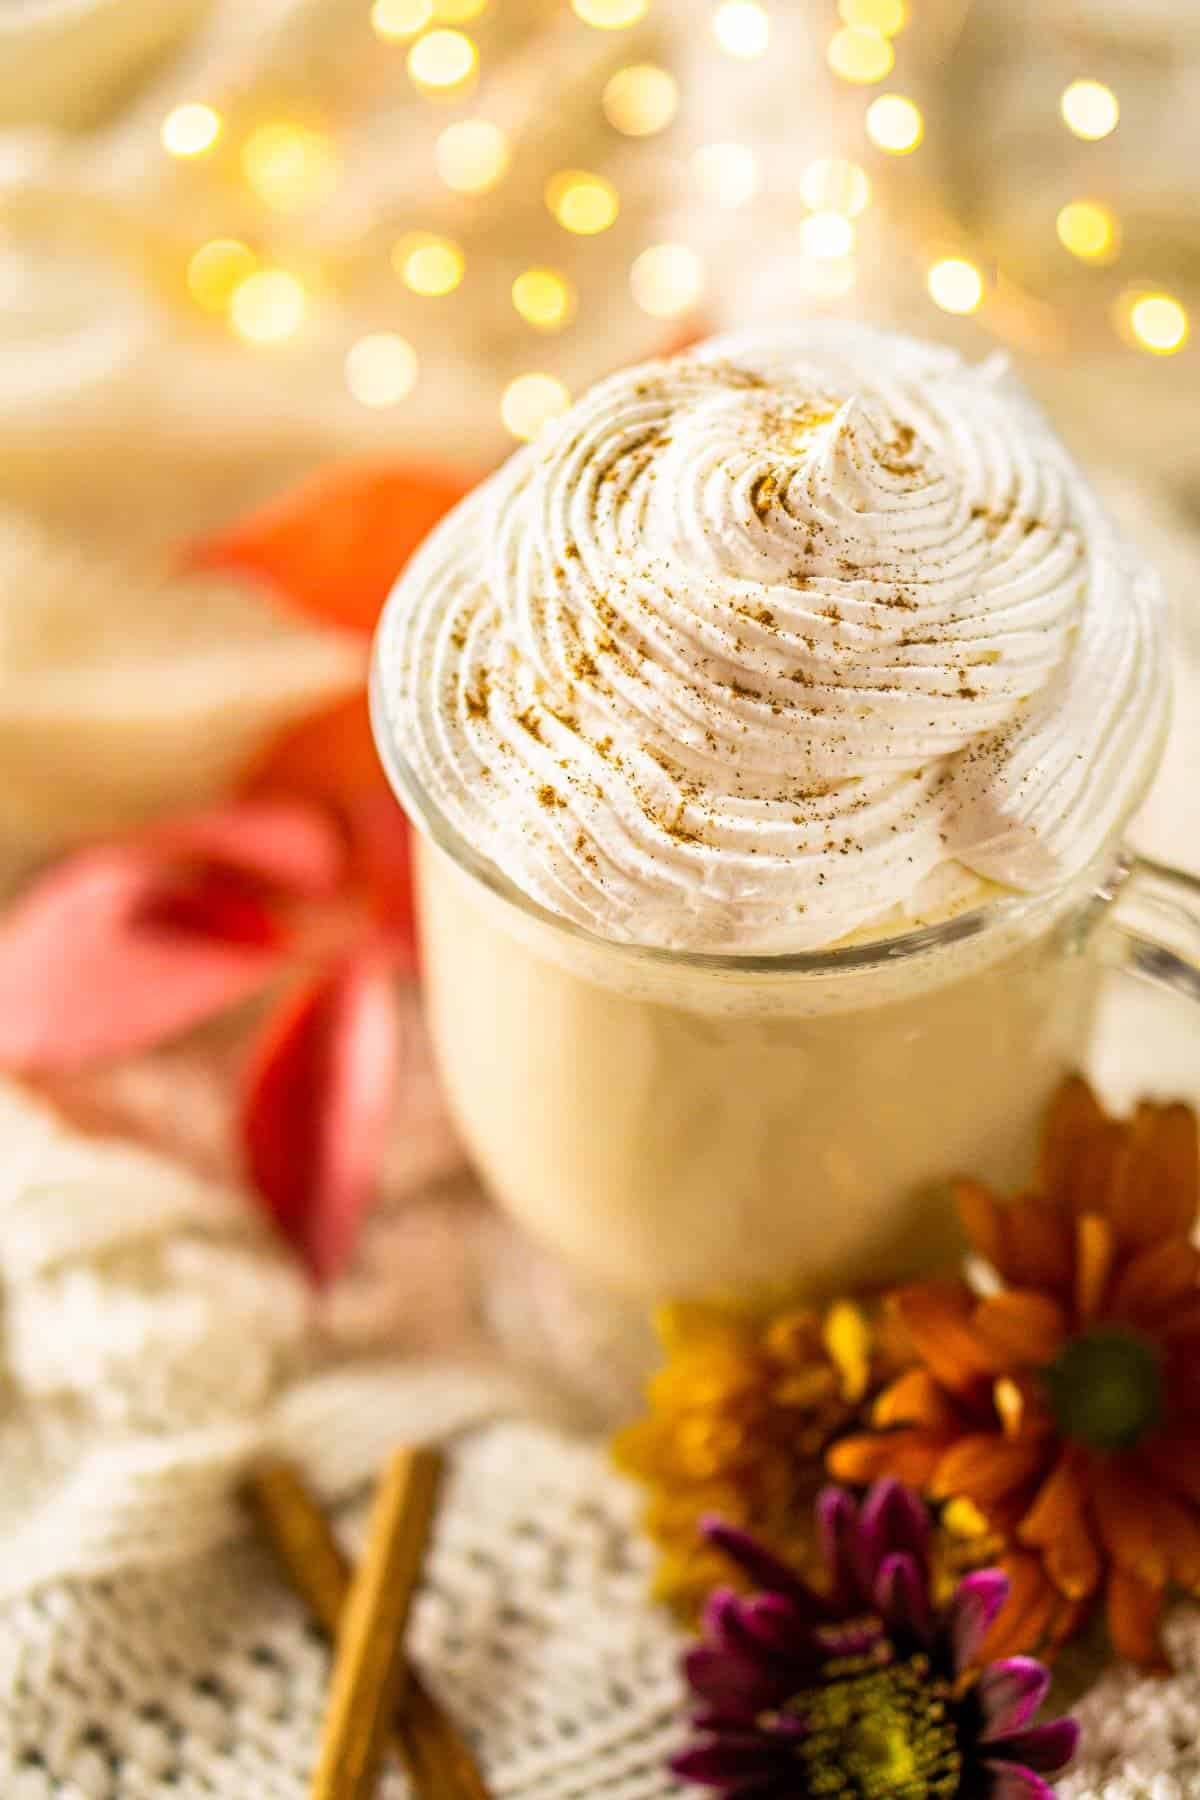 An aerial view of the maple latte with a fall leaf behind it and flowers to the side.